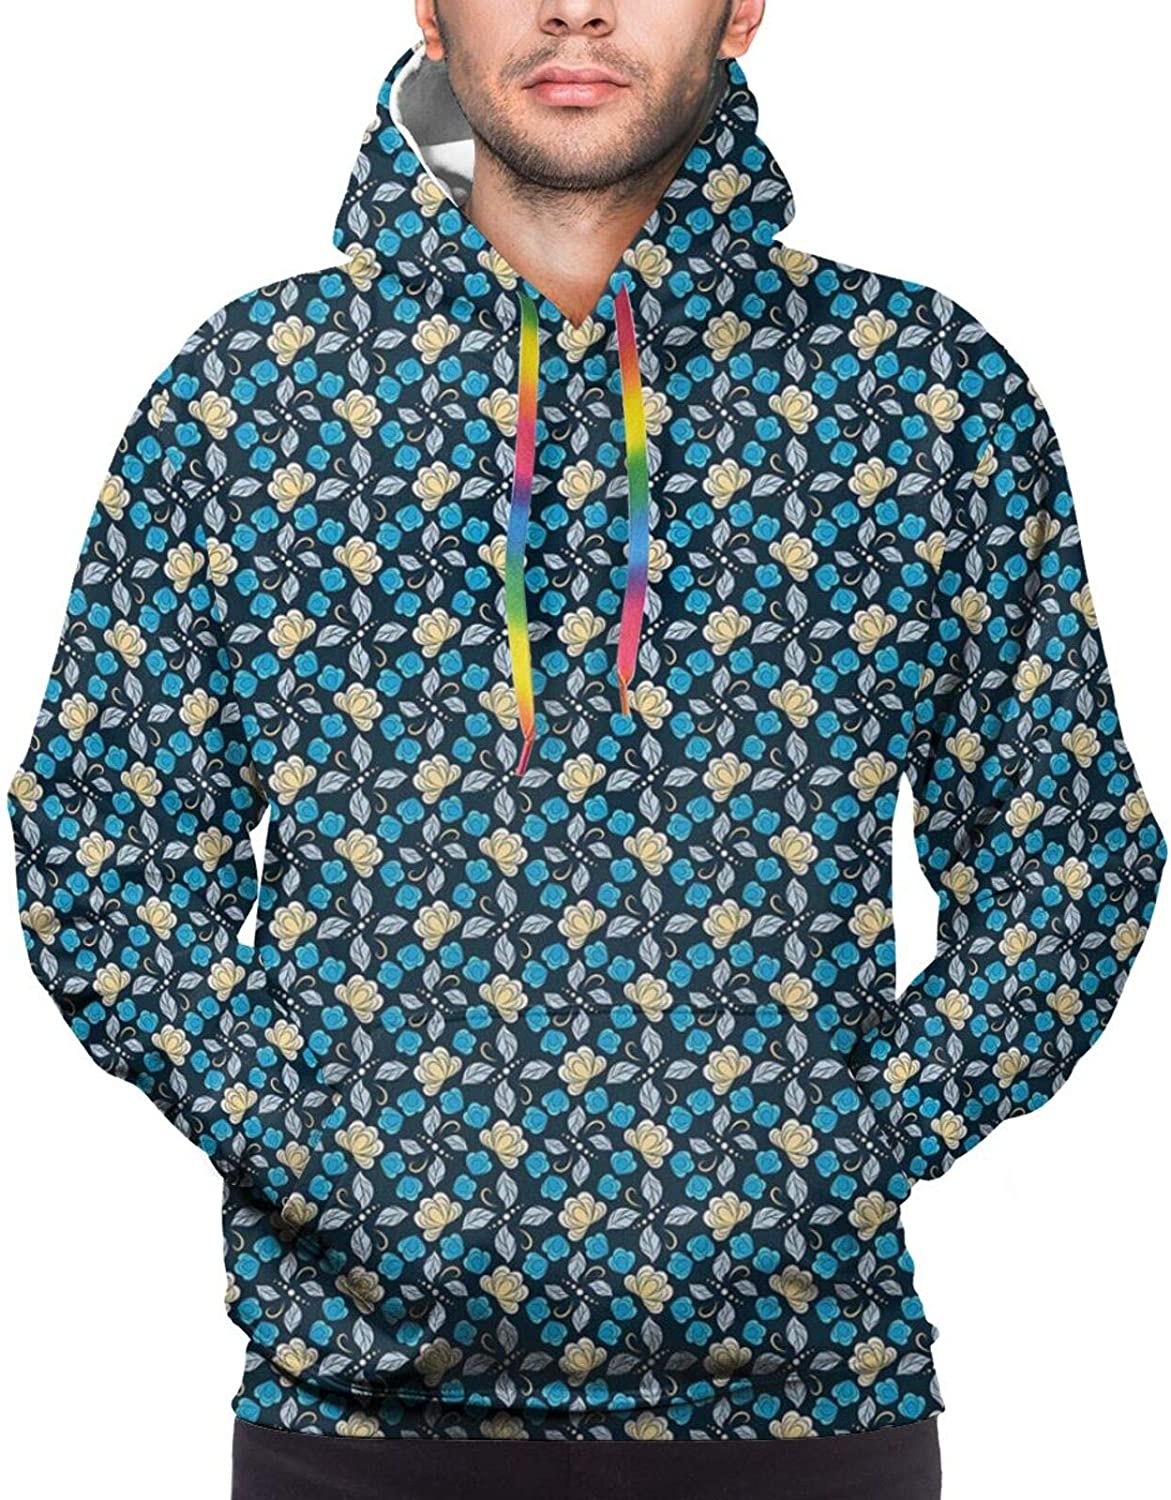 Men's Hoodies Sweatshirts,Abstract Striped Flowers Leaves and Dots